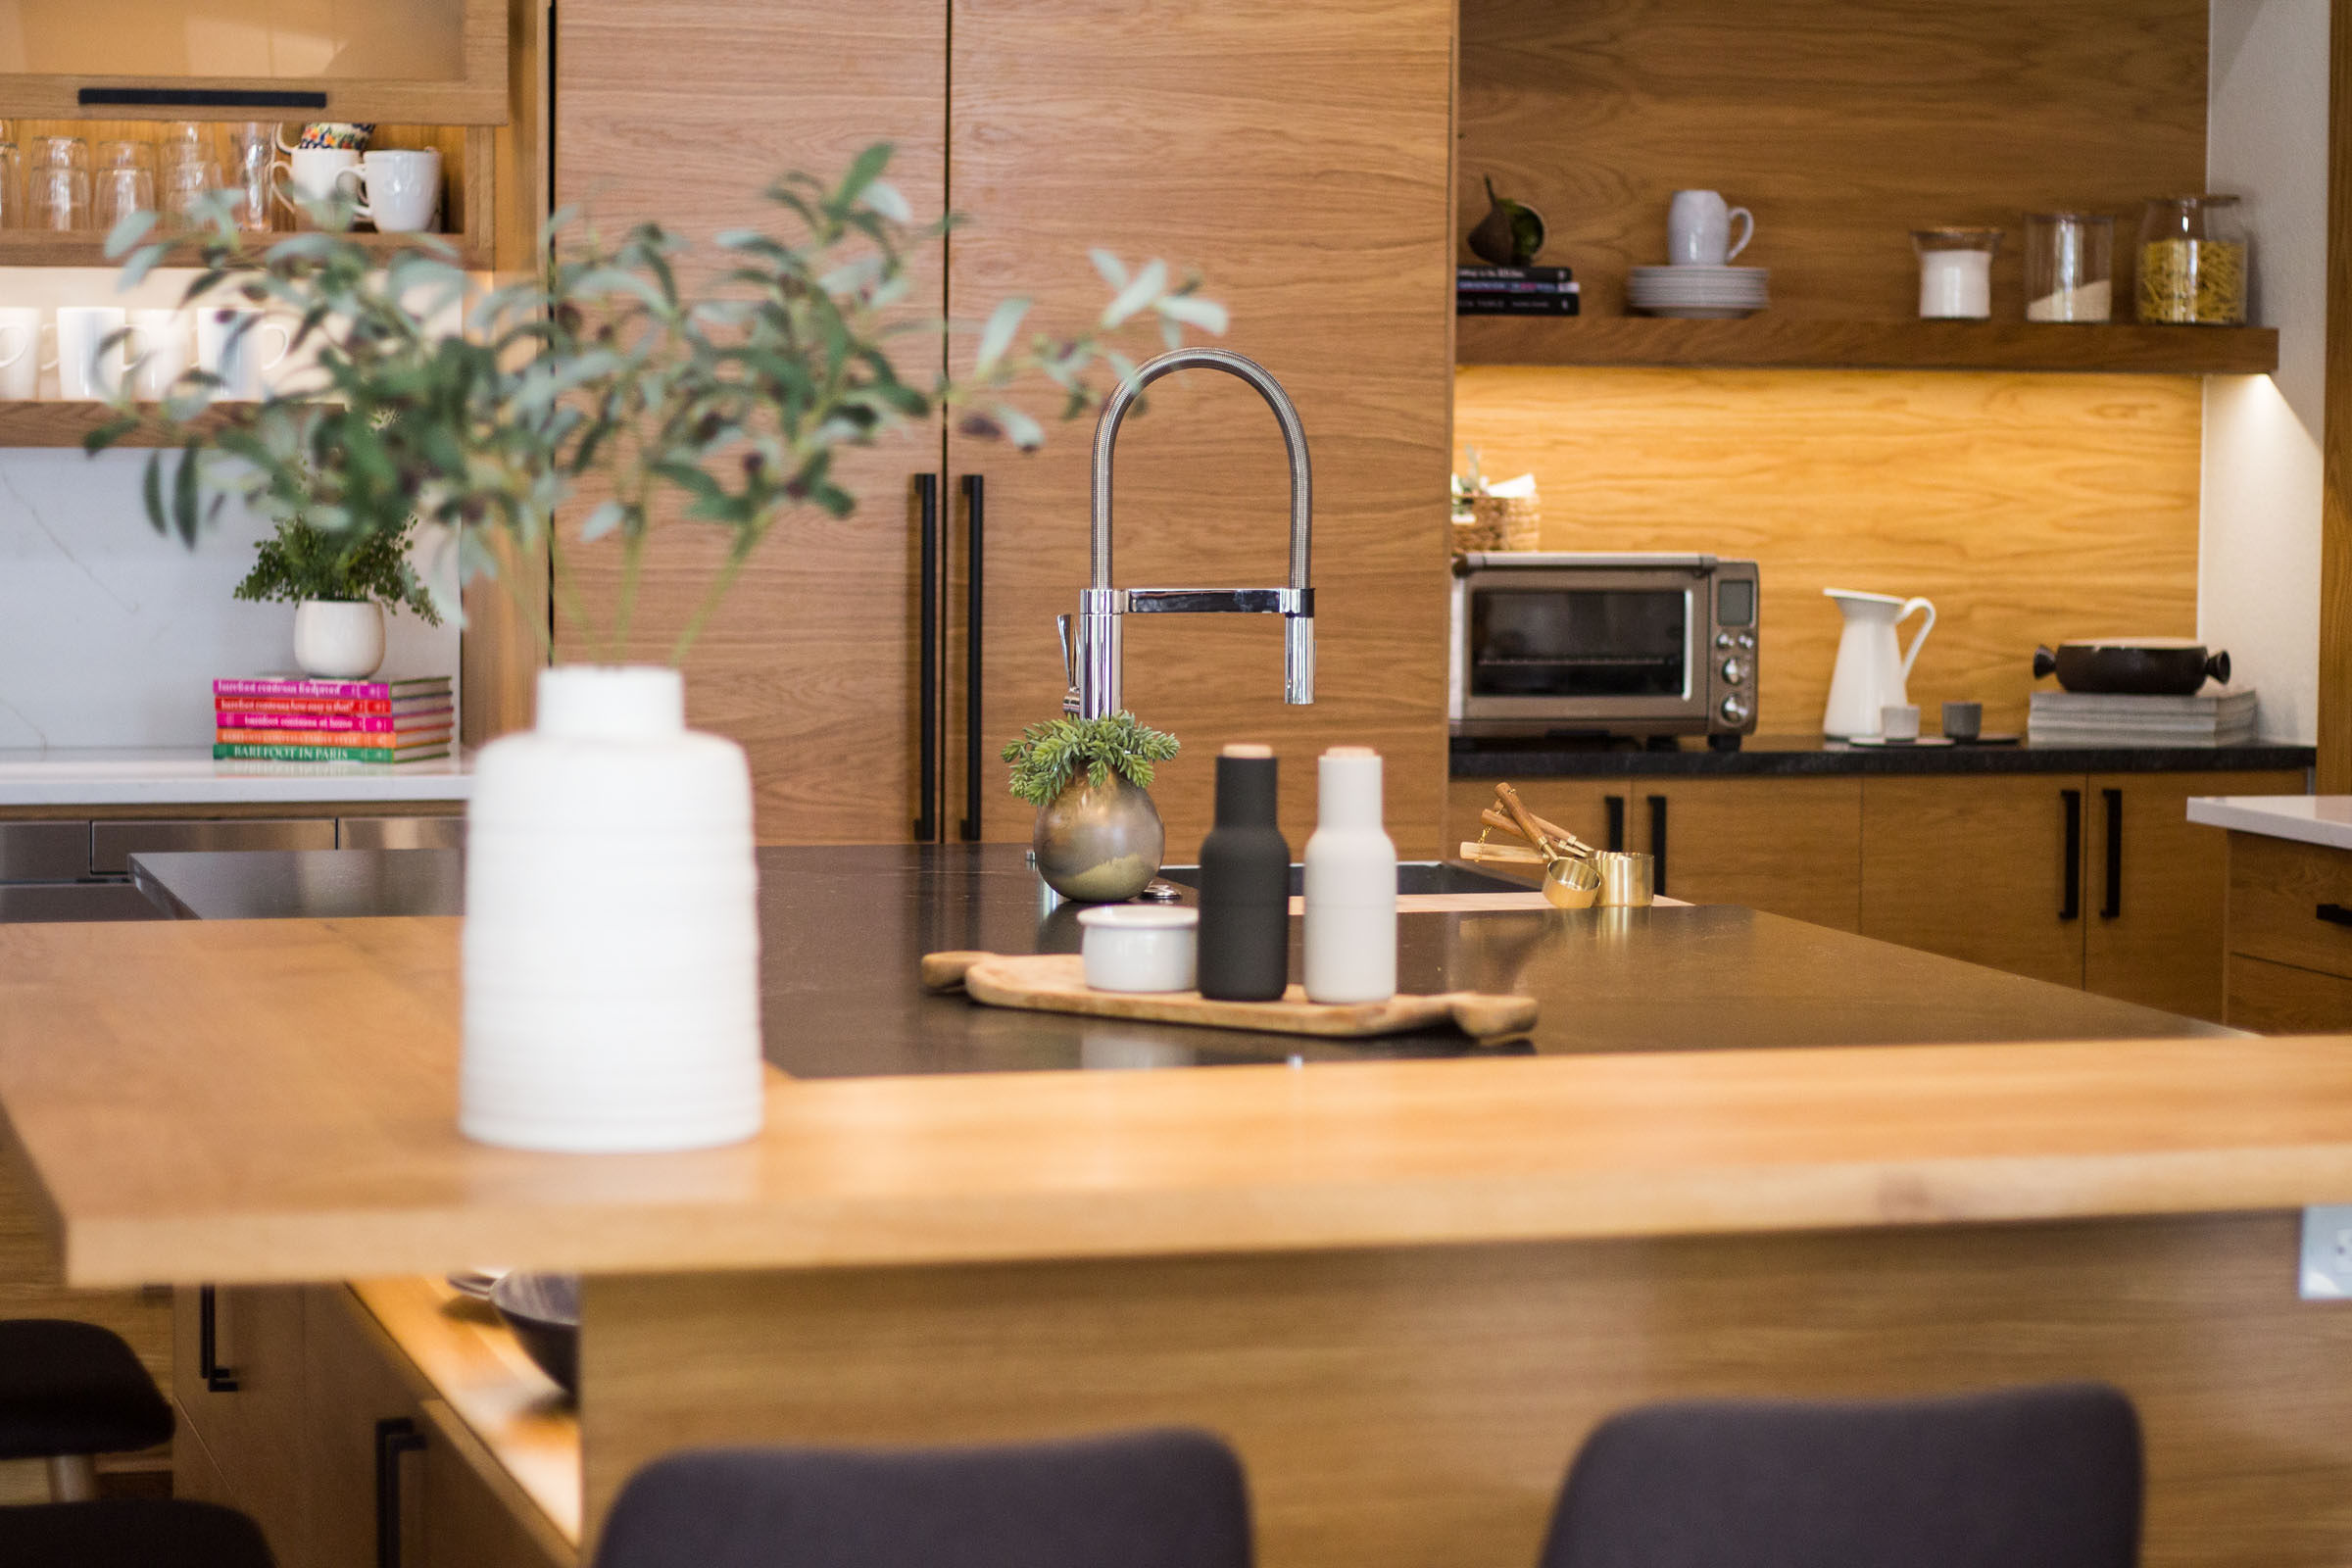 Out of focus shot of Scandinavian Kitchen Remodel, staged photo shoot with modern decor